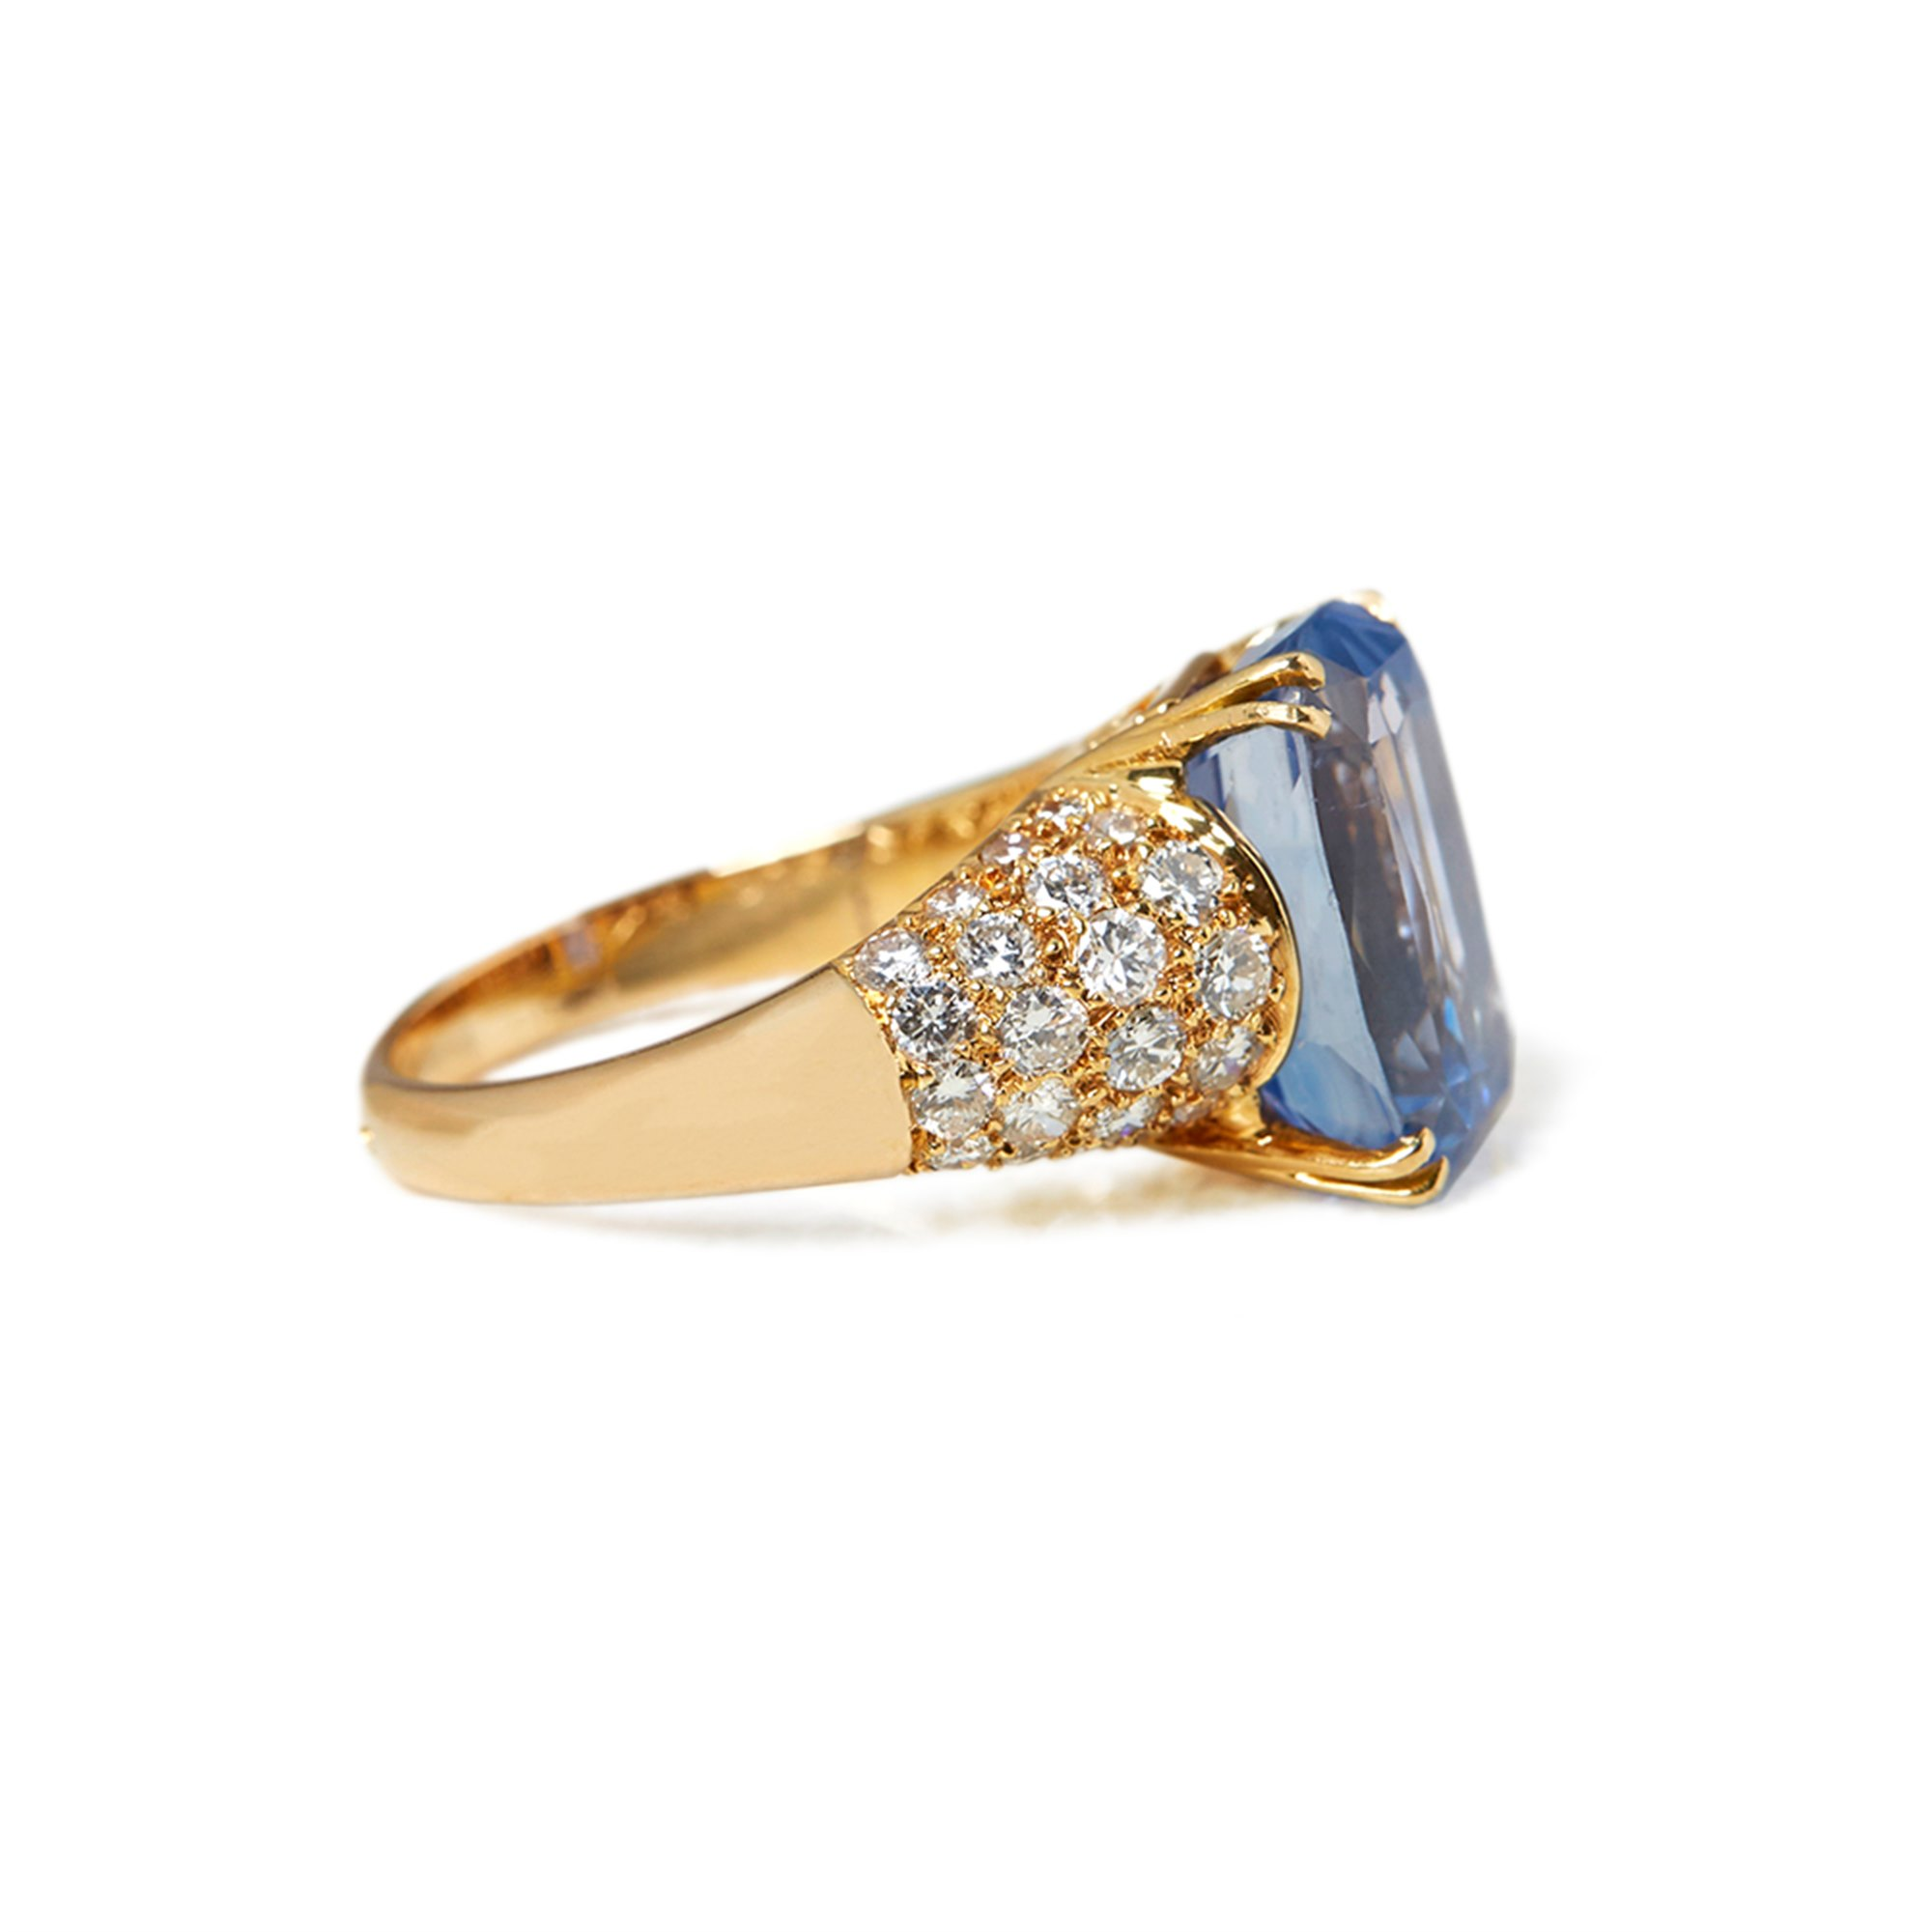 Van Cleef & Arpels 18k Yellow Gold Ceylon Sapphire & Diamond Cocktail Ring